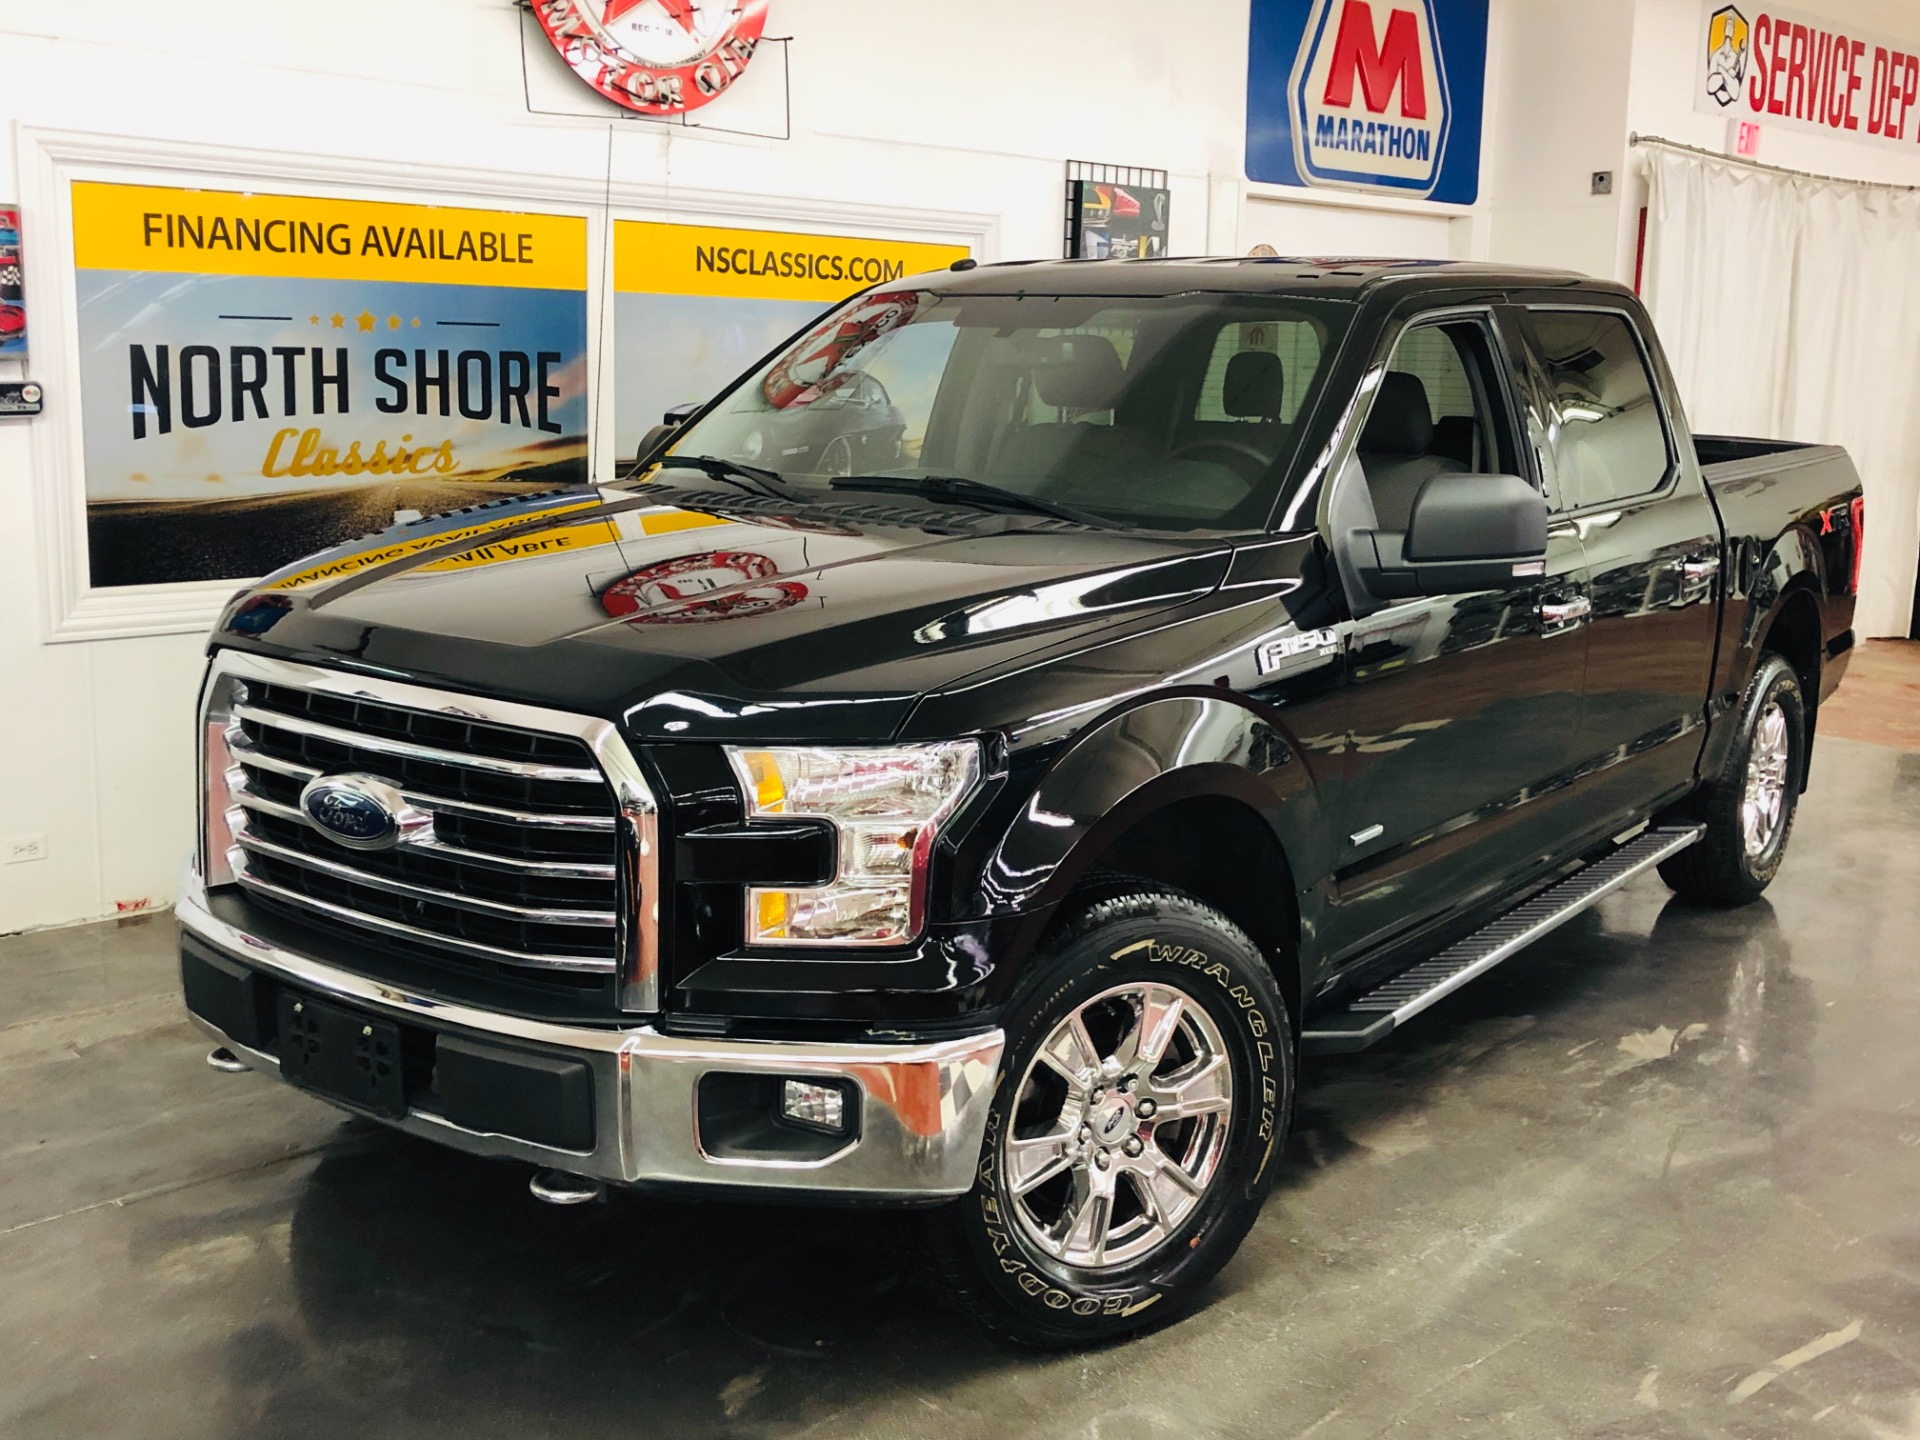 Used 2016 Ford F150 -NO HAGGLE BUY IT NOW-XLT-4WD V6-1 OWNER- | Mundelein, IL